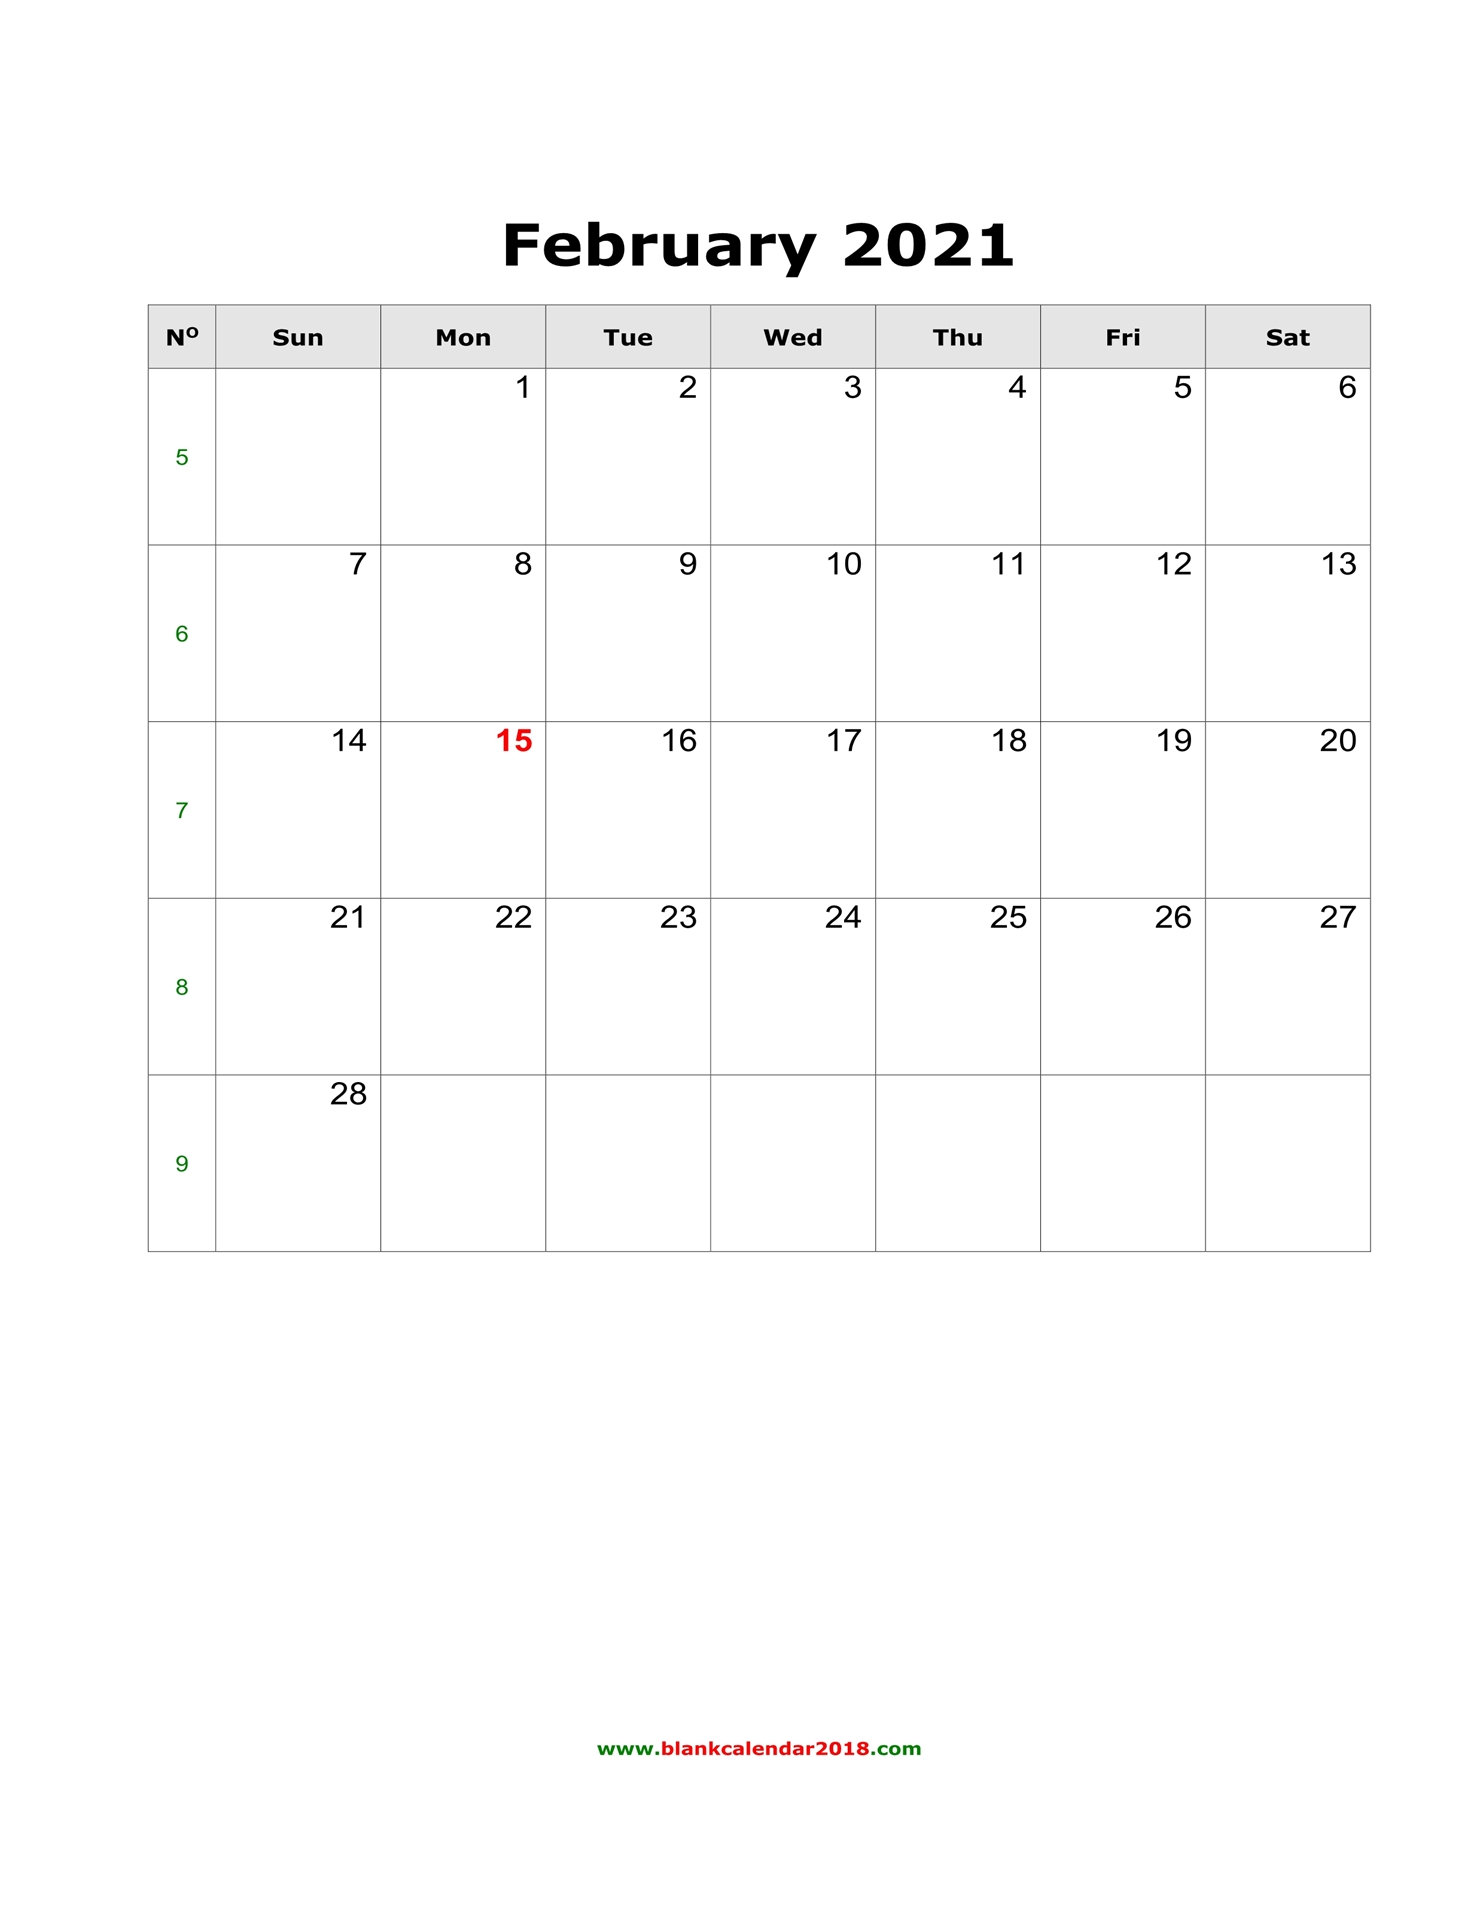 Blank Calendar For February 2021 inside Blank Monthly Calendar Portrait